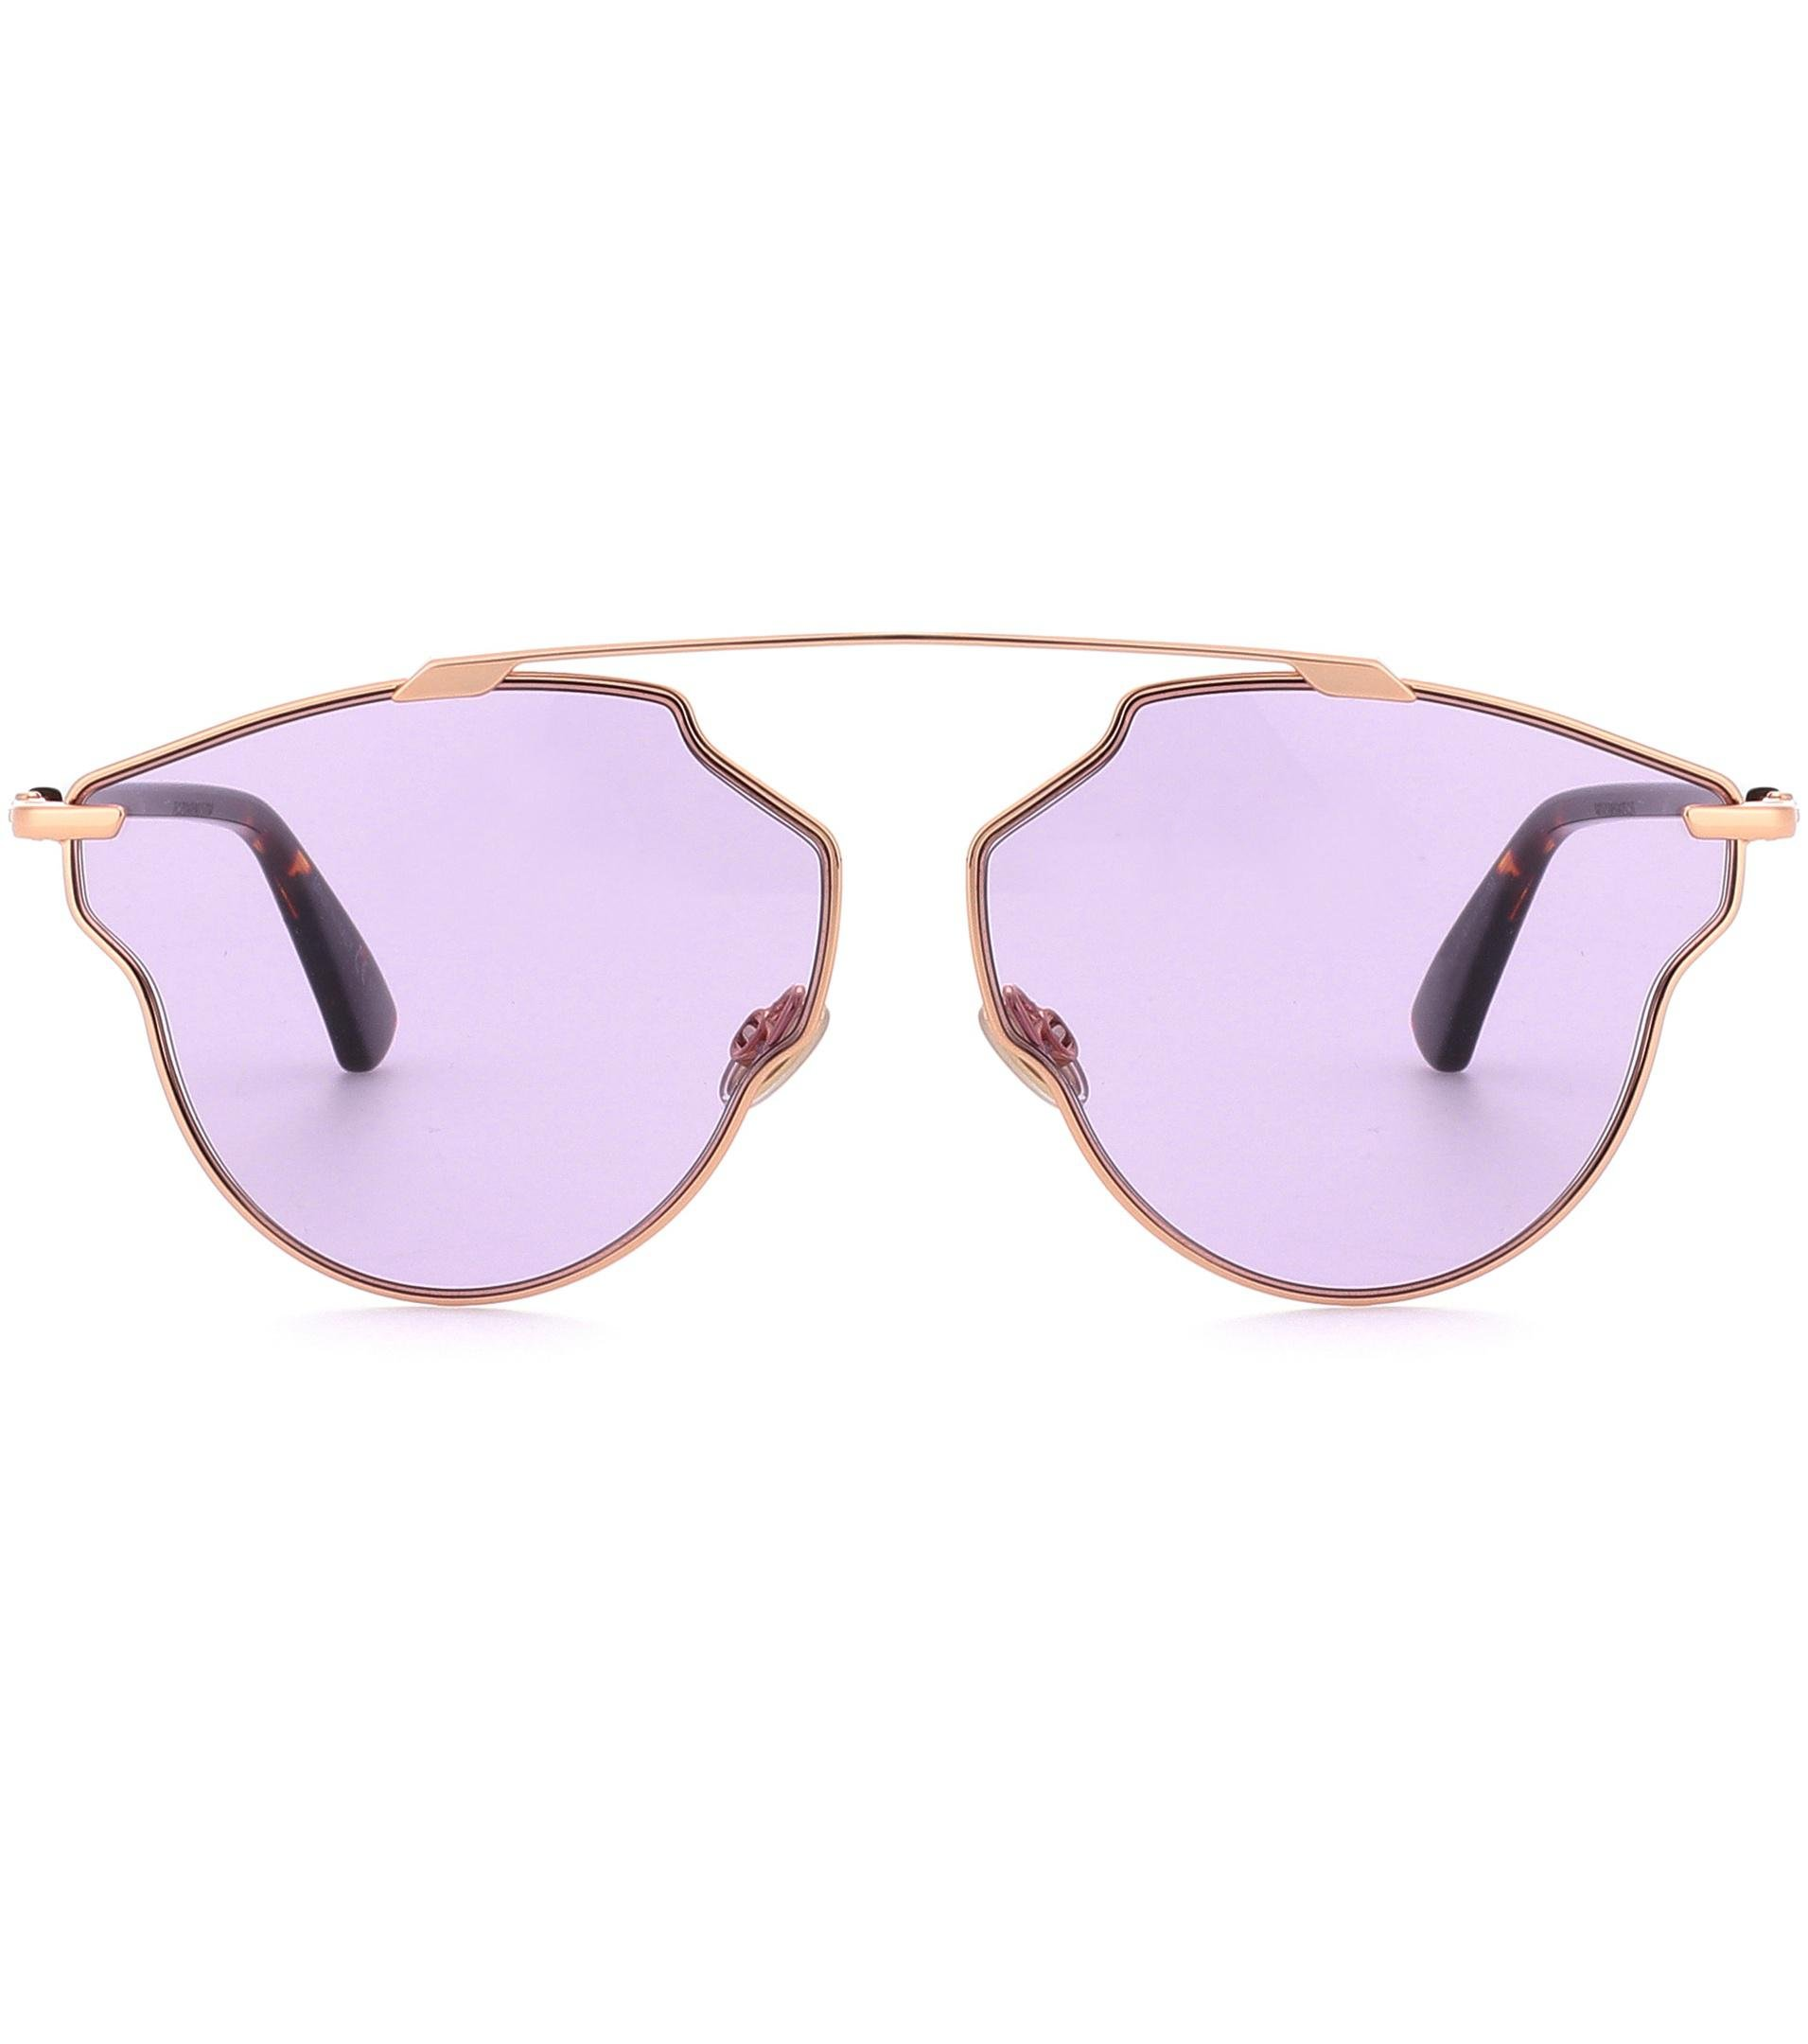 94f67a51b79 Gallery. Previously sold at  Mytheresa · Women s Dior So Real Women s  Oversized Square Sunglasses ...